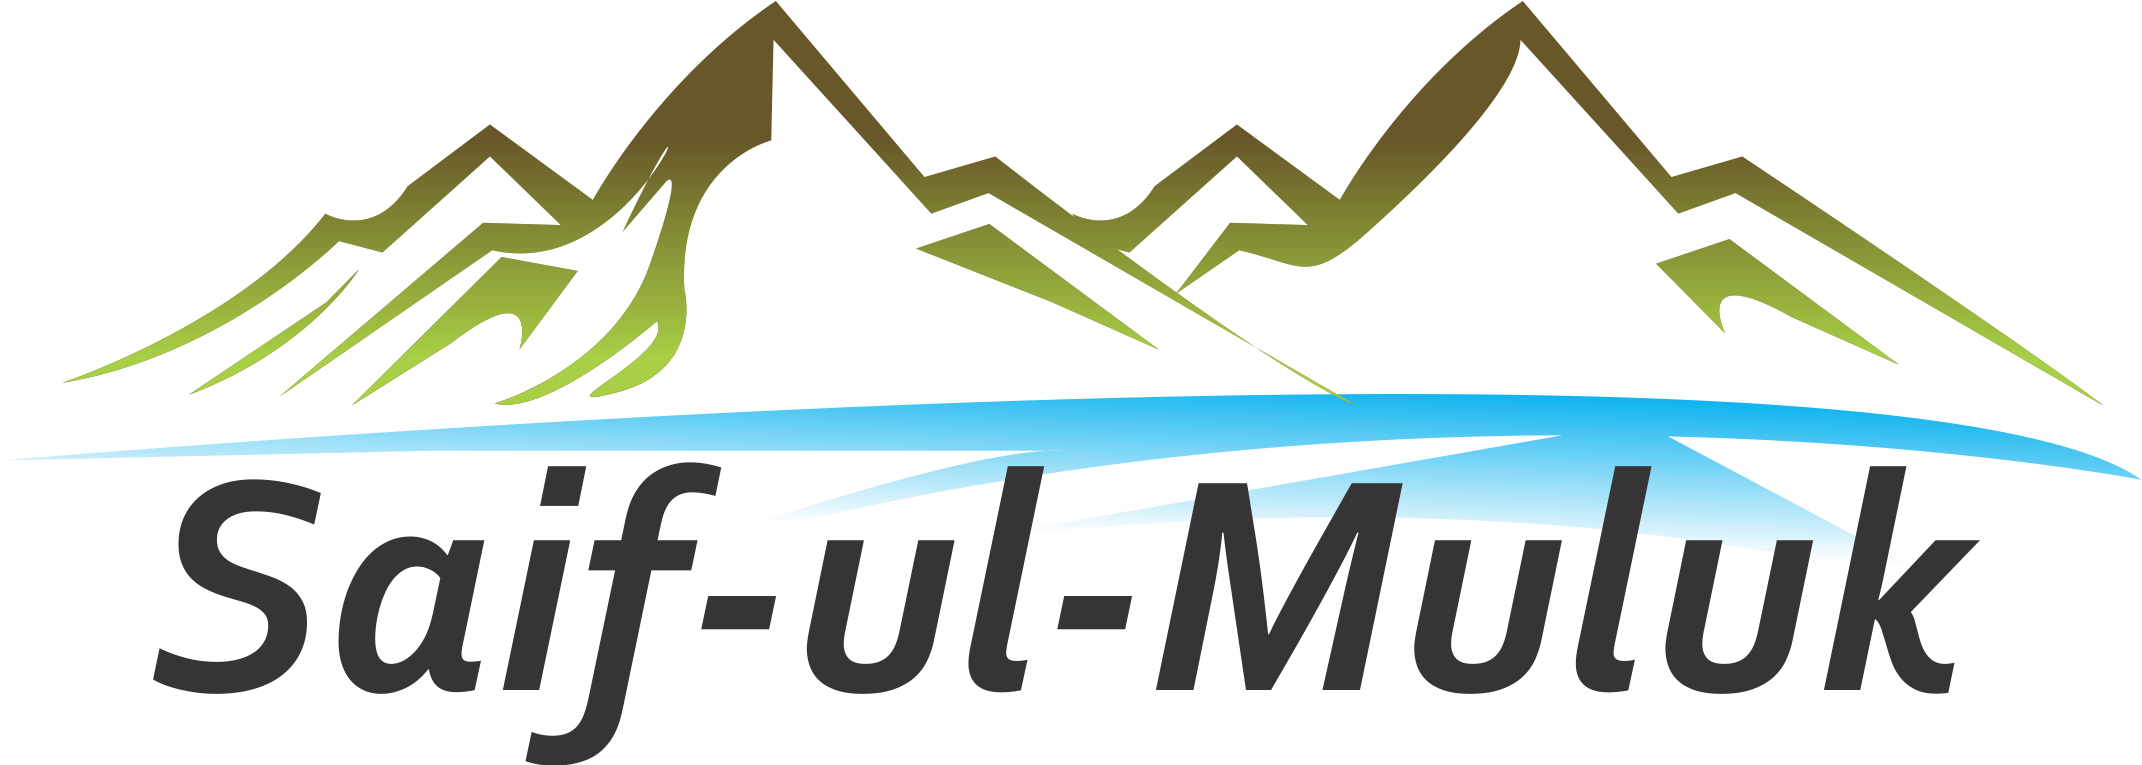 SaifulMuluk Tour and Travel Company | Saif-Ul-Muluk | pakistan Archives - SaifulMuluk Tour and Travel Company | Saif-Ul-Muluk